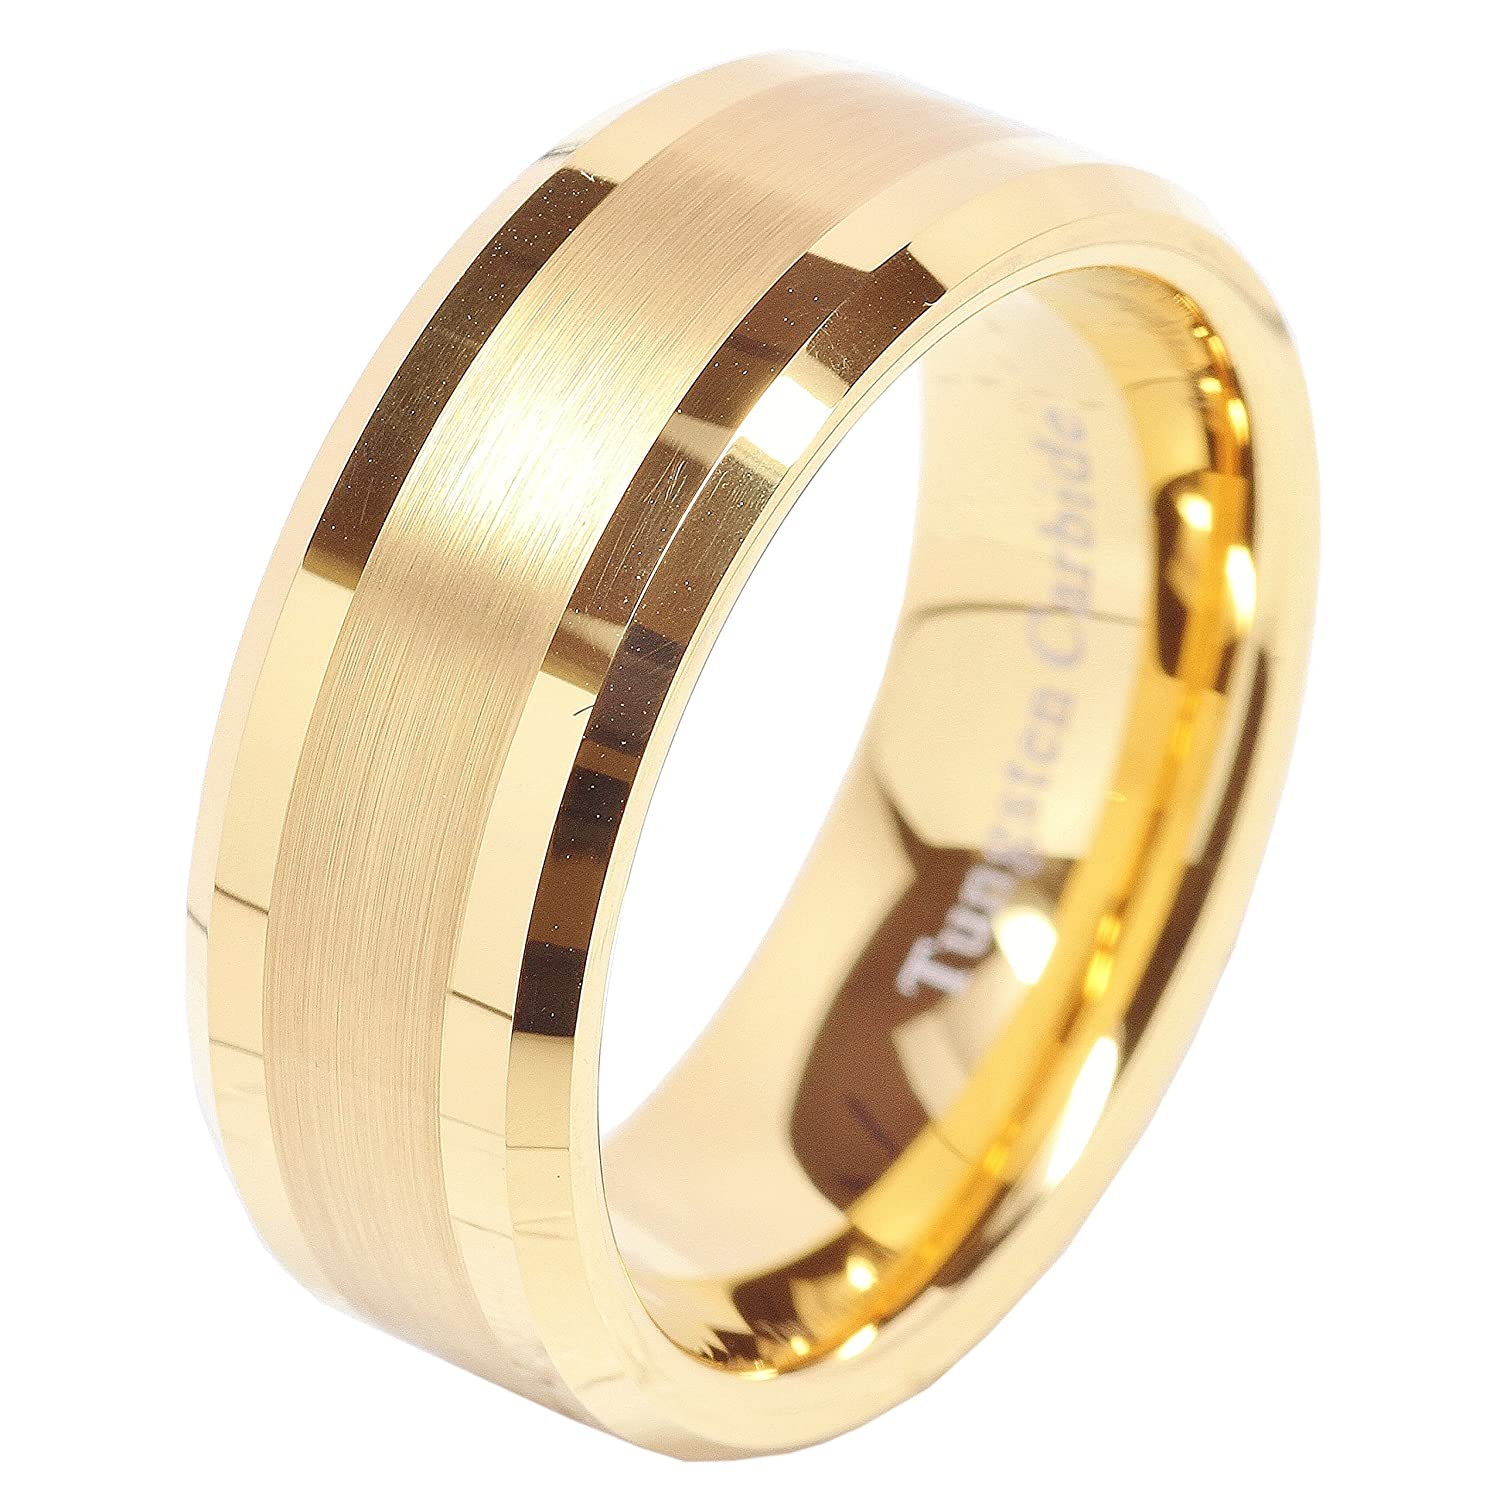 100S JEWELRY 8mm Men's Tungsten Carbide Ring Wedding Band 14k Gold Plated Jewelry Bridal Size 8-16